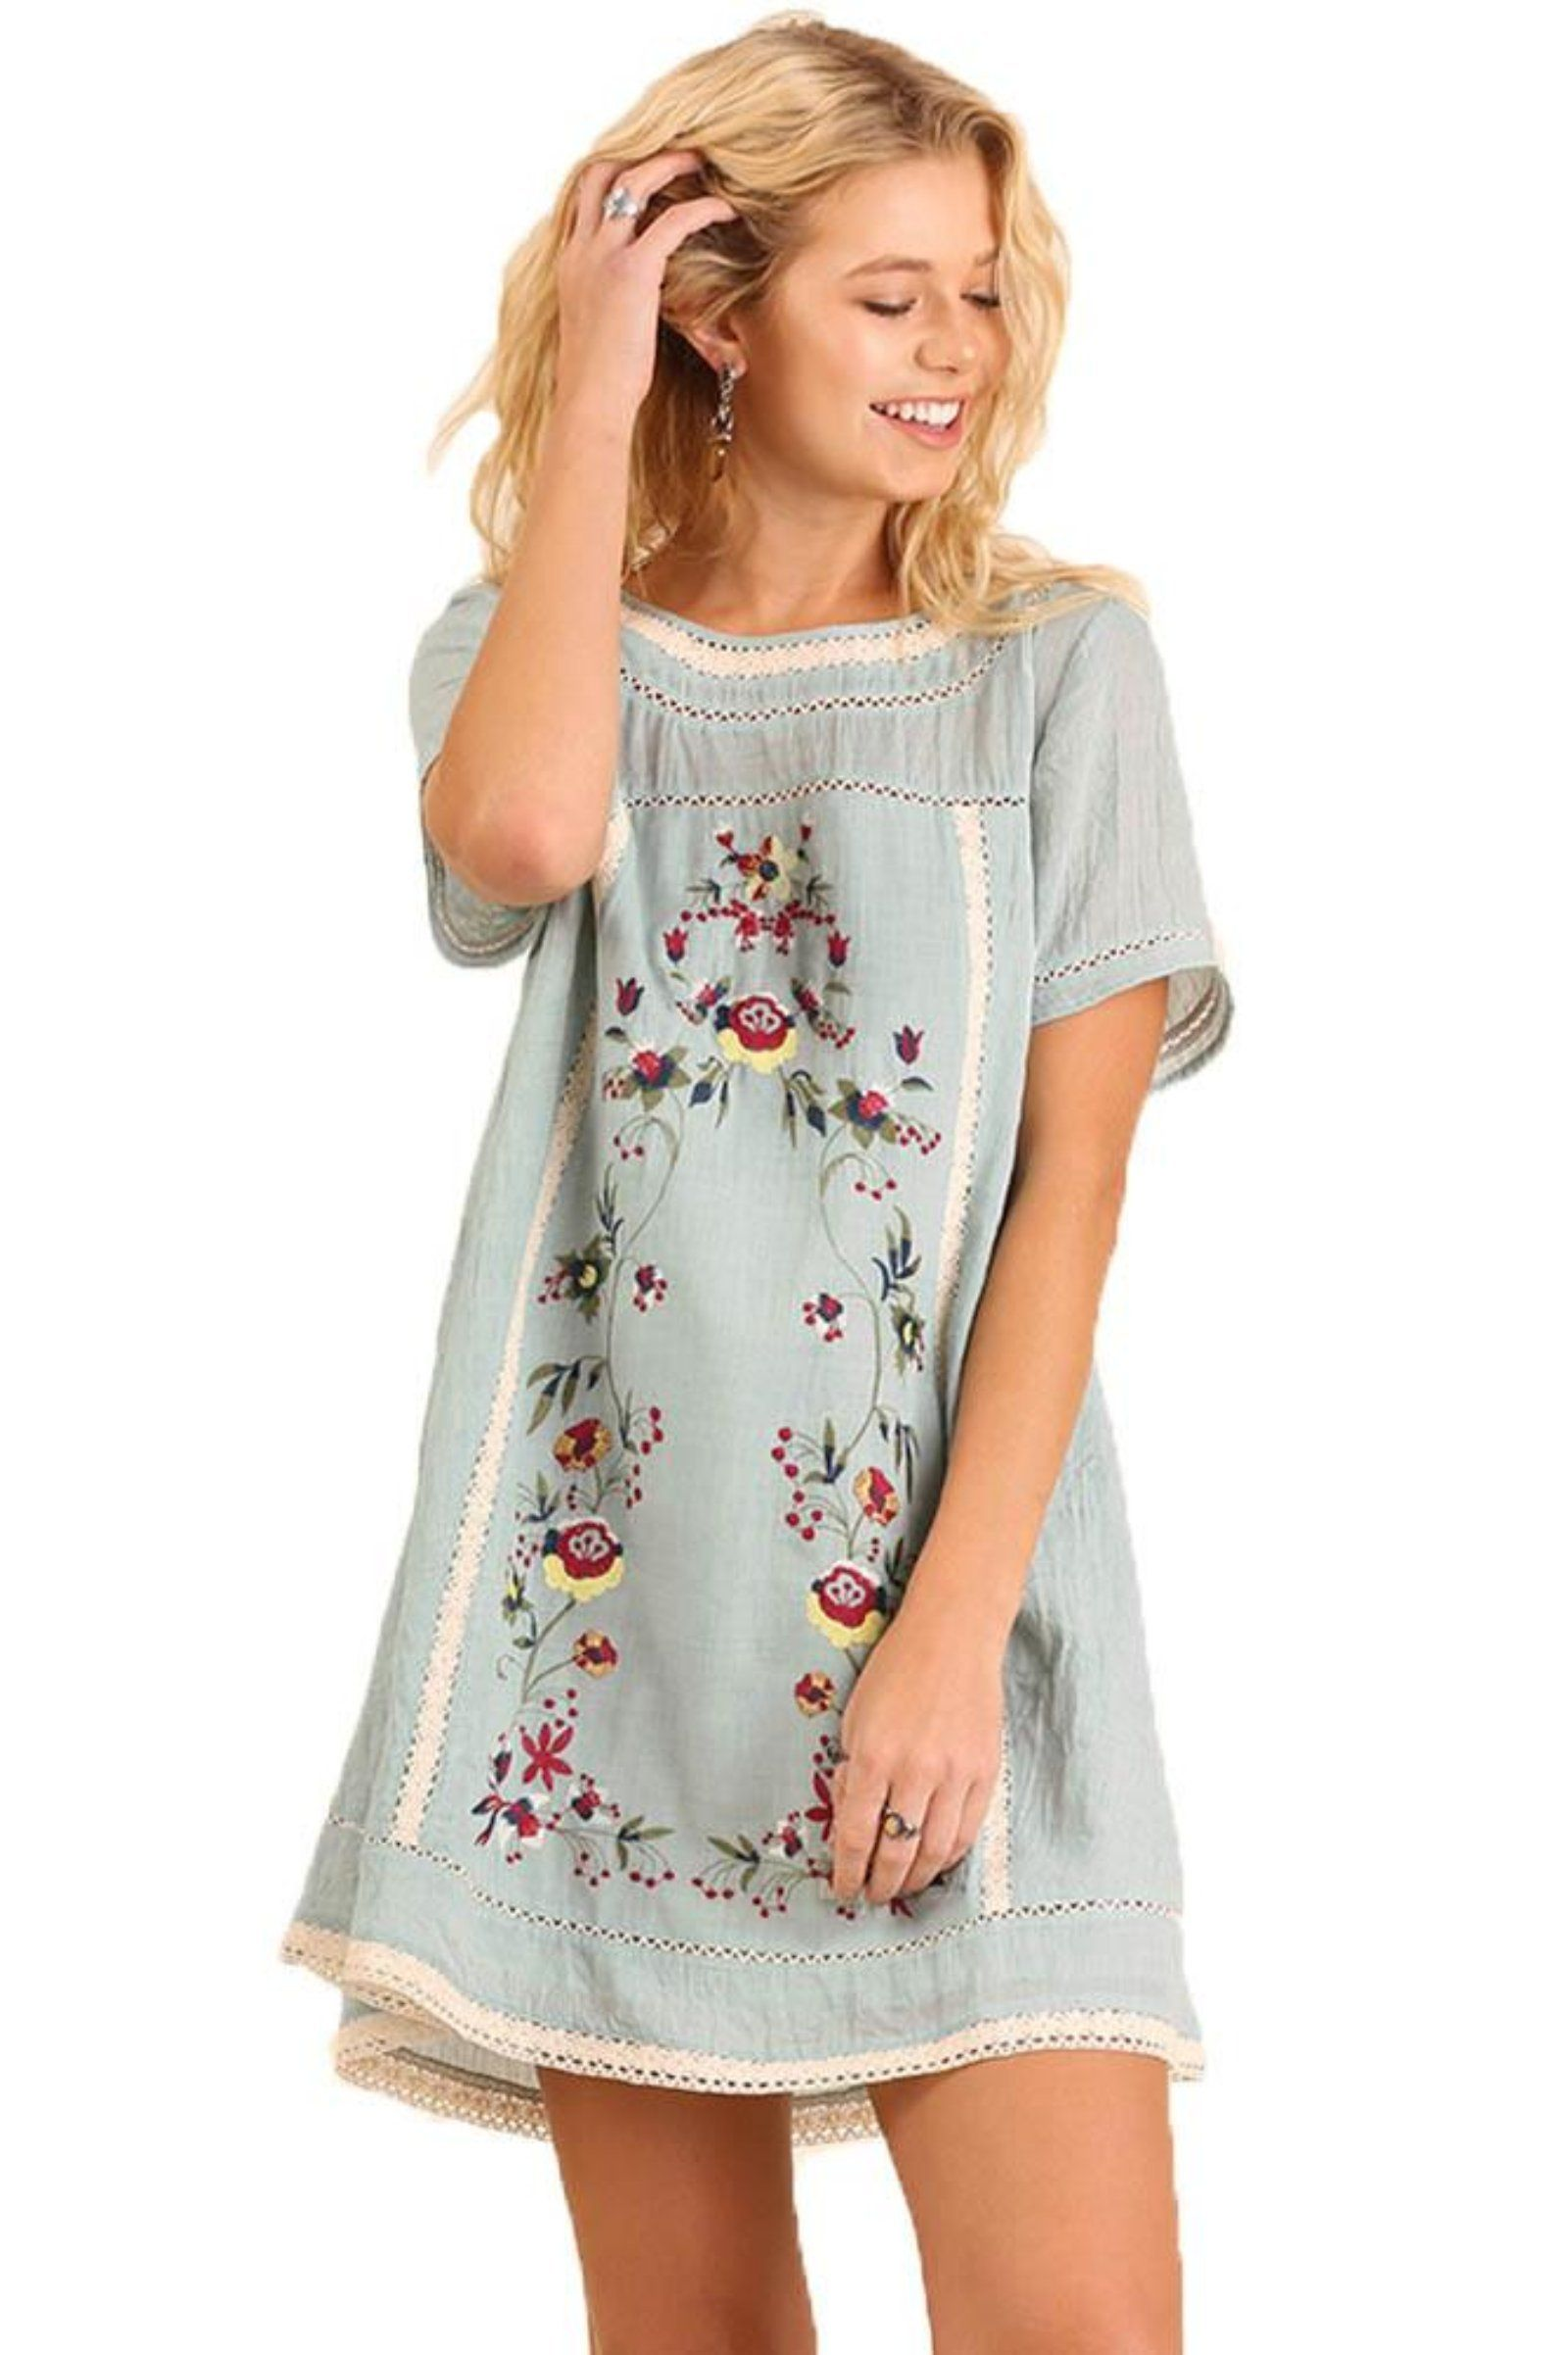 830dfe3e534576 Umgee Women s Light Blue Bohemian Embroidered Short Sleeve Dress or Tunic